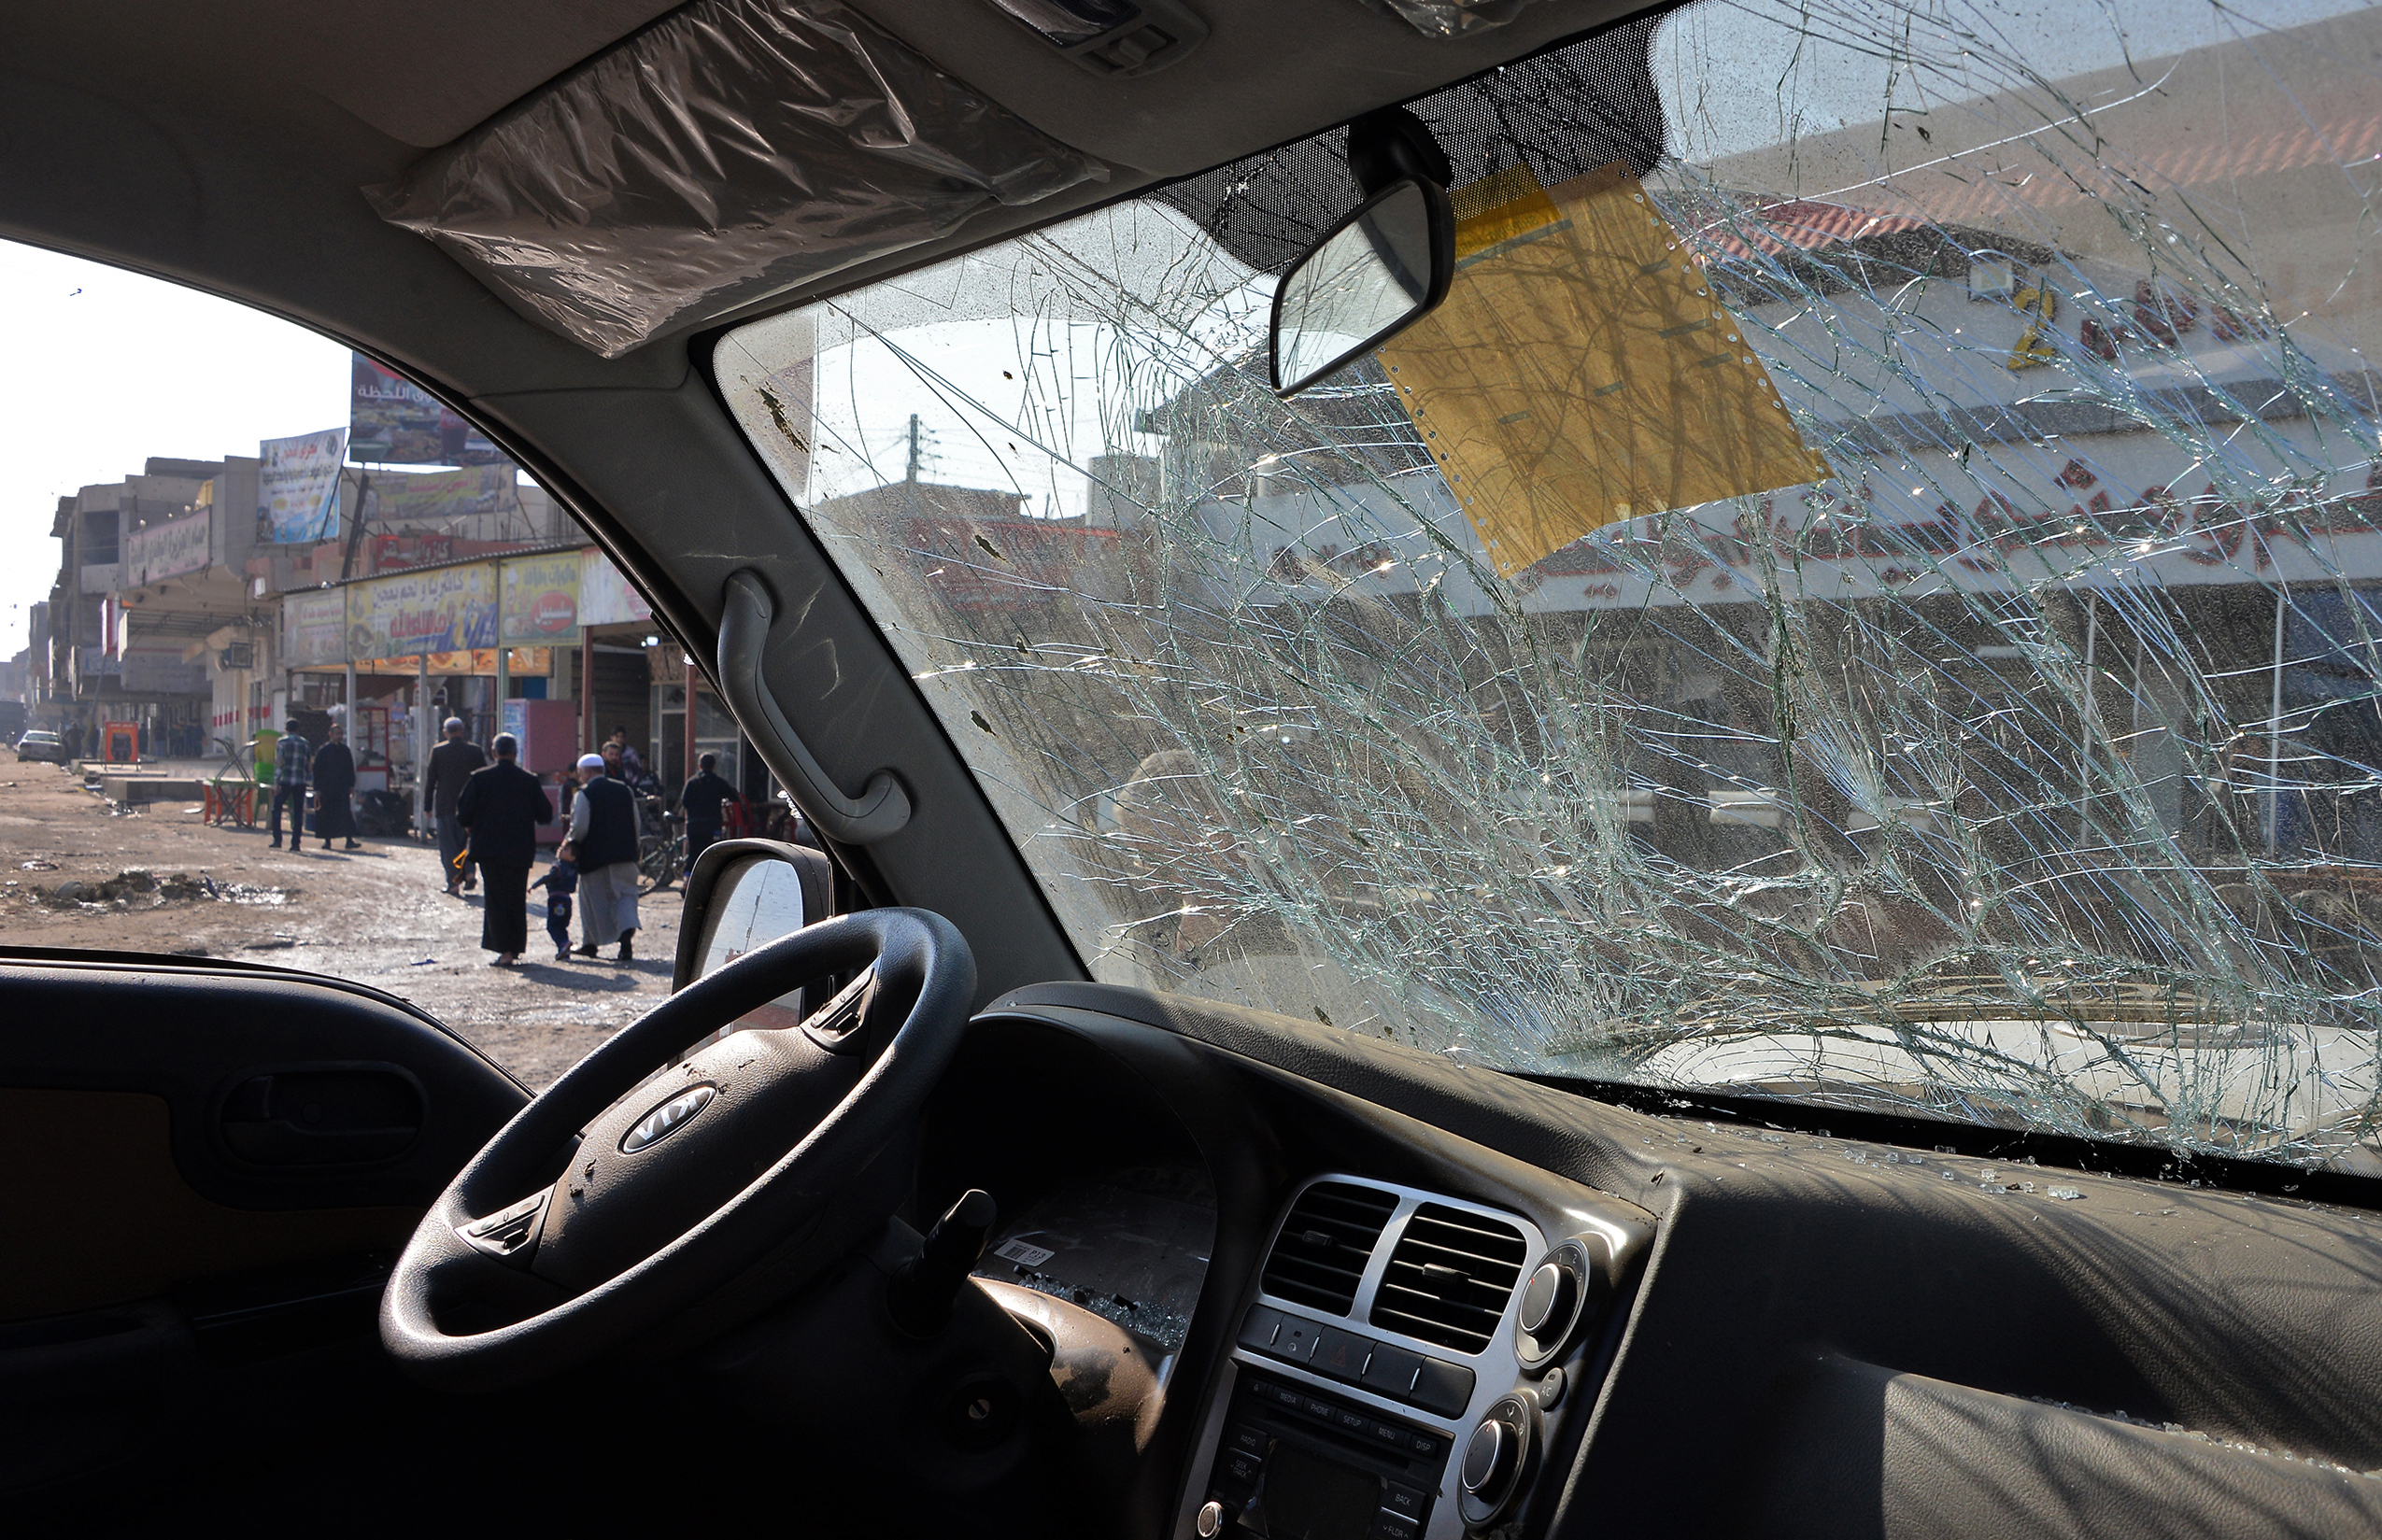 Iraqis are seen through a damaged car in Mosul, Iraq, Nov. 9, 2018. A car bomb that killed three people and wounded a dozen on Nov. 8, 2018, the first such attack since jihadists were ousted from the city last year.